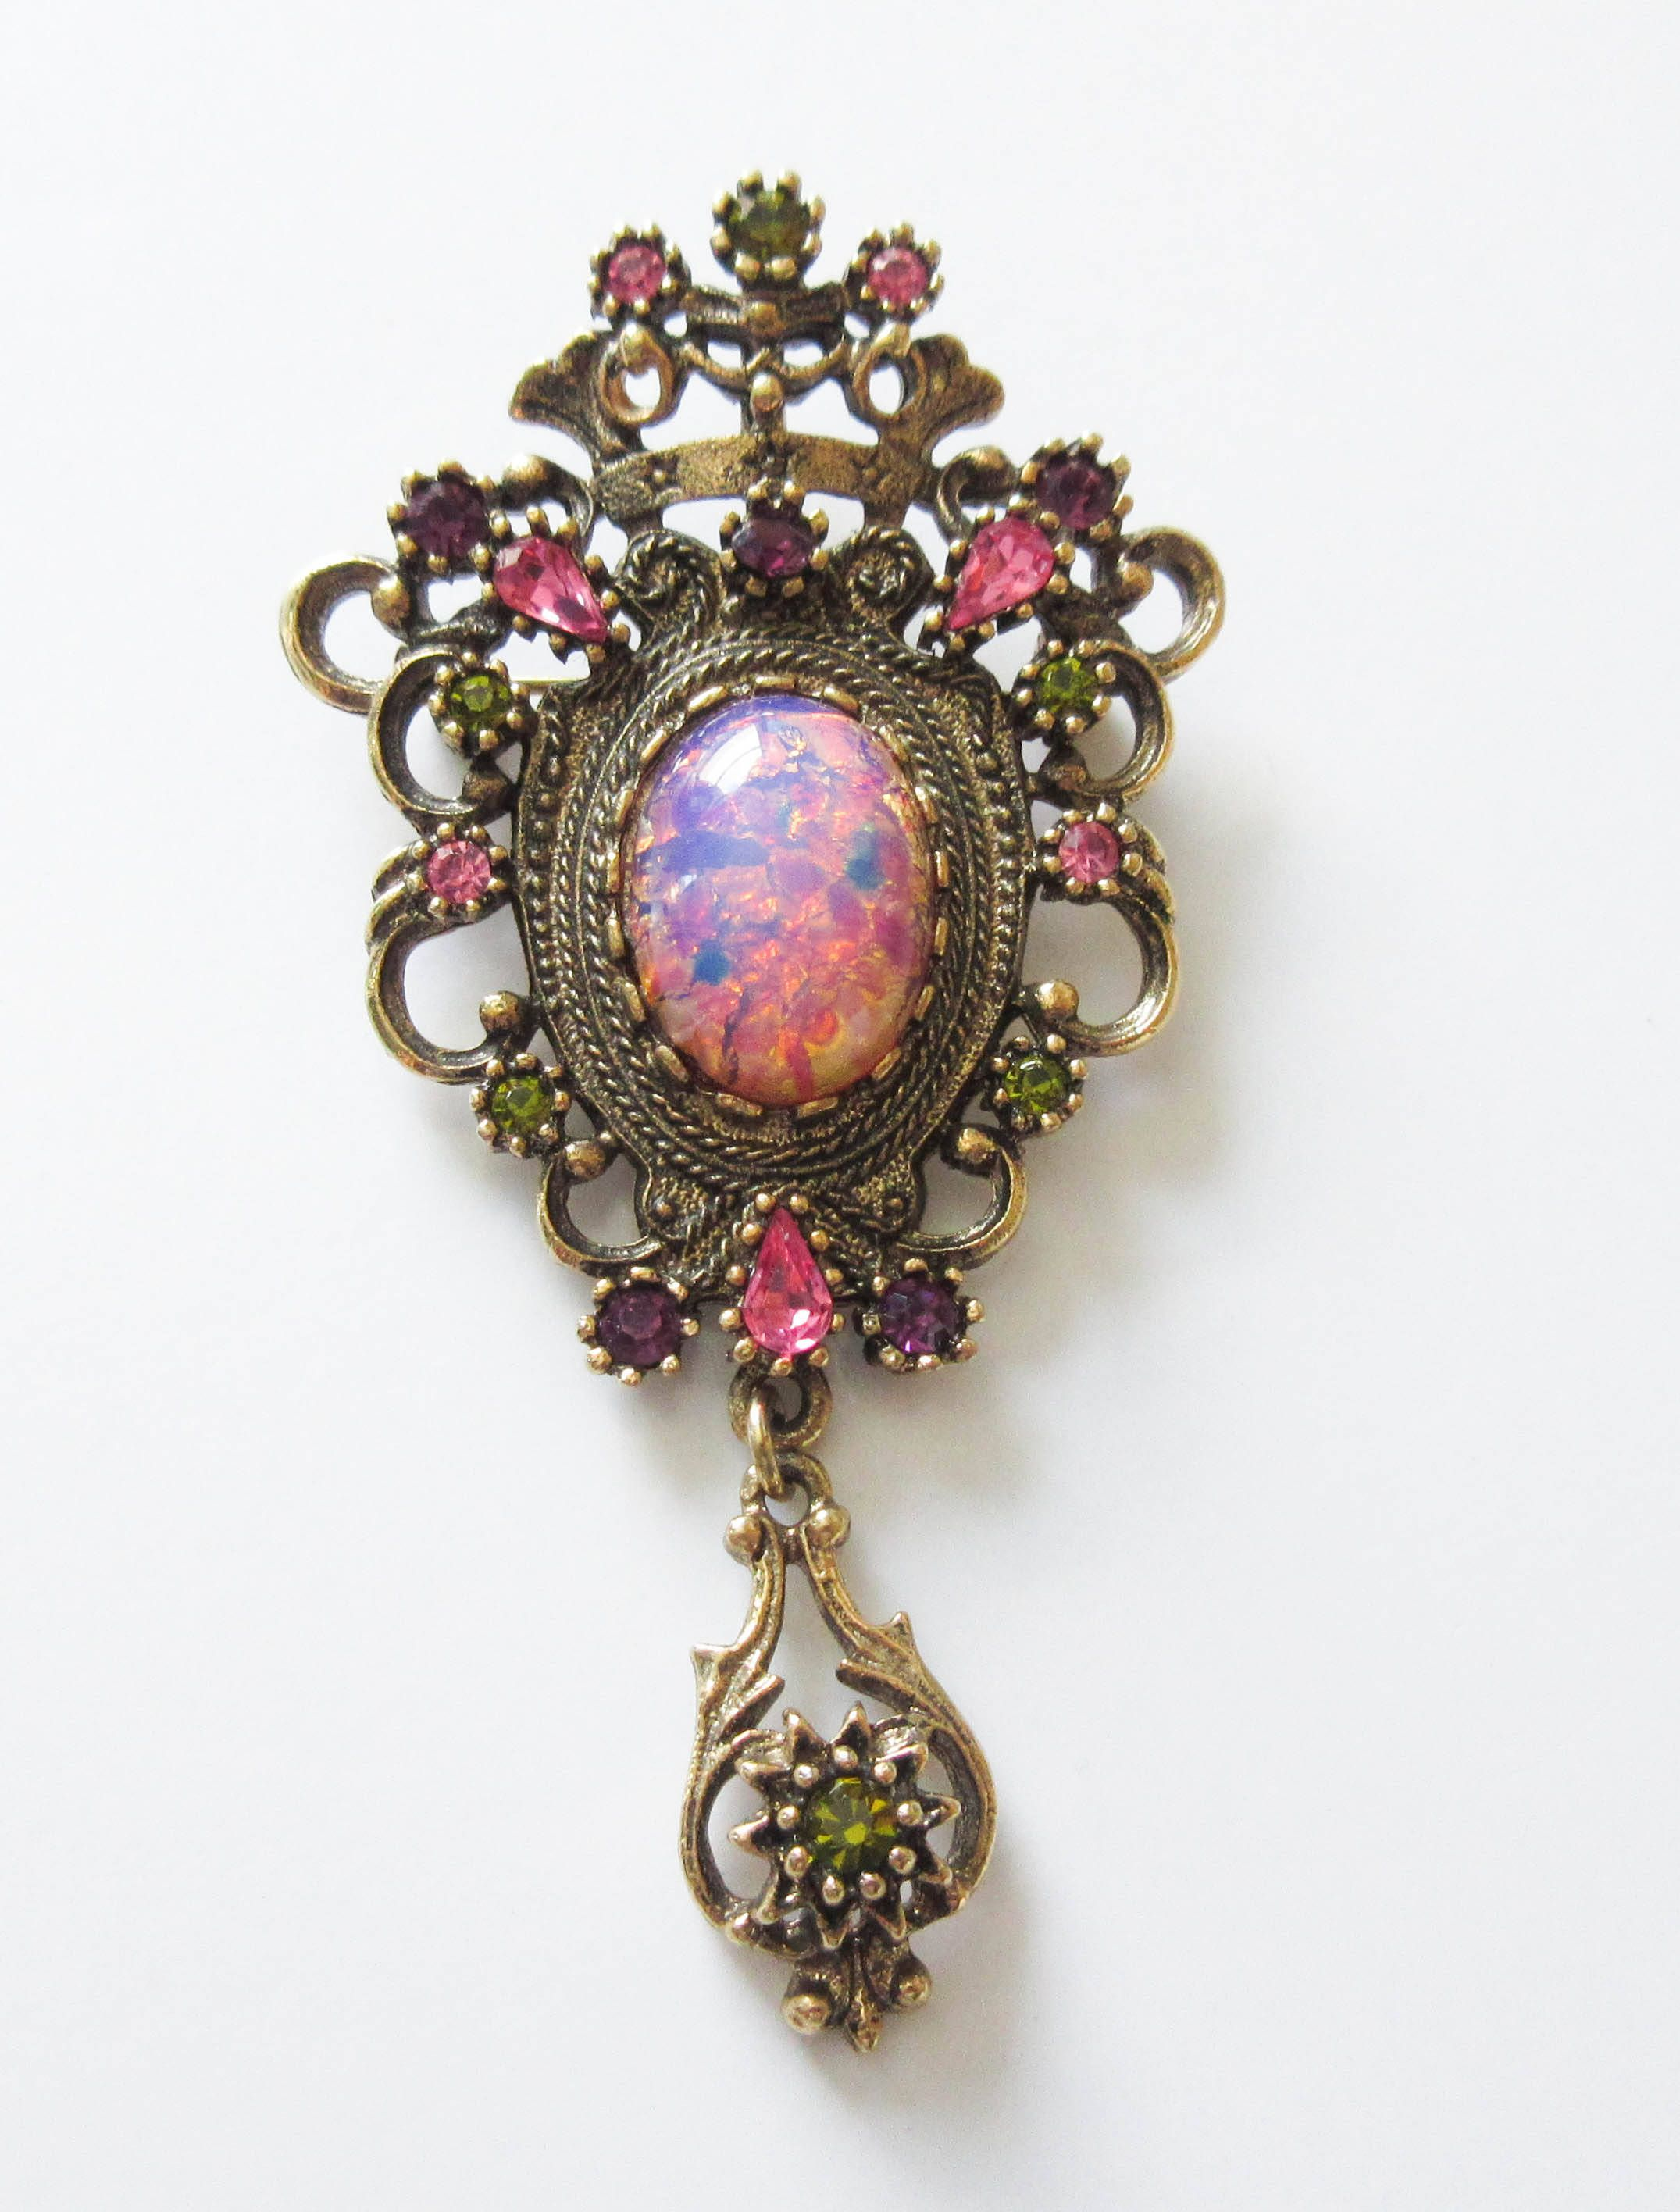 Sarah coventry contessa brooch pin pendant rhinestones faux opal sarah coventry contessa brooch pin pendant rhinestones faux opal pink and purple by artsix on etsy aloadofball Choice Image